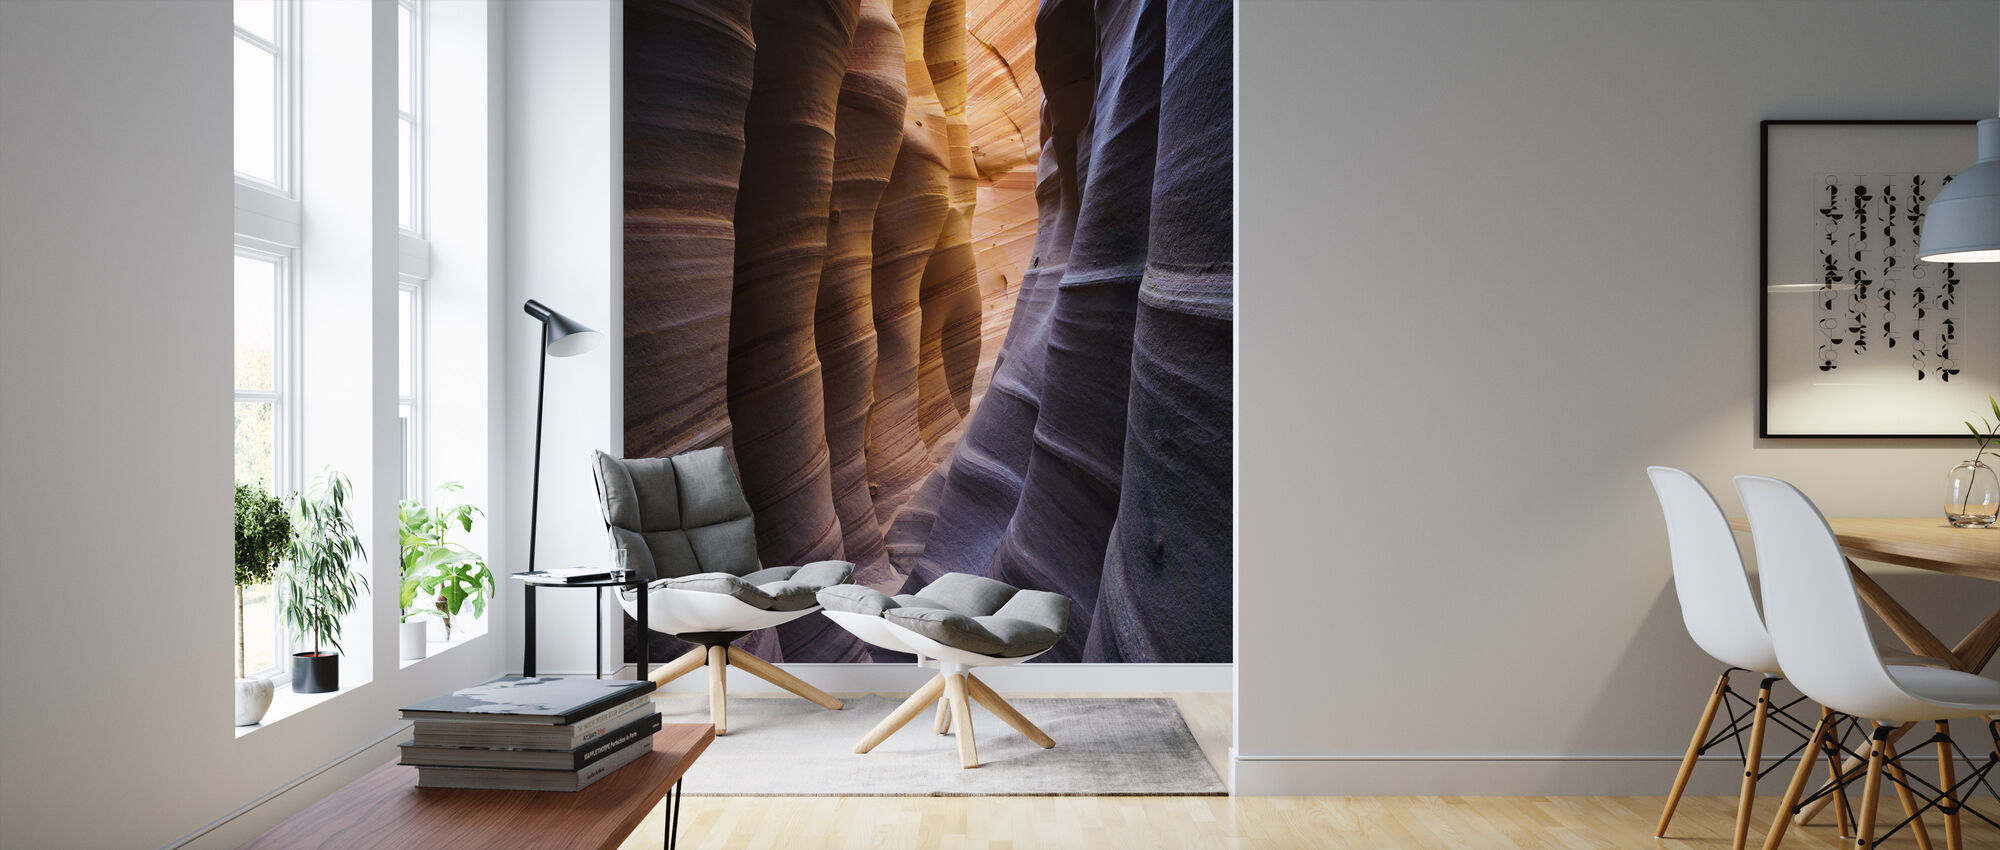 Zebra Slot Canyon, Escalante National Monument - Wallpaper - Living Room